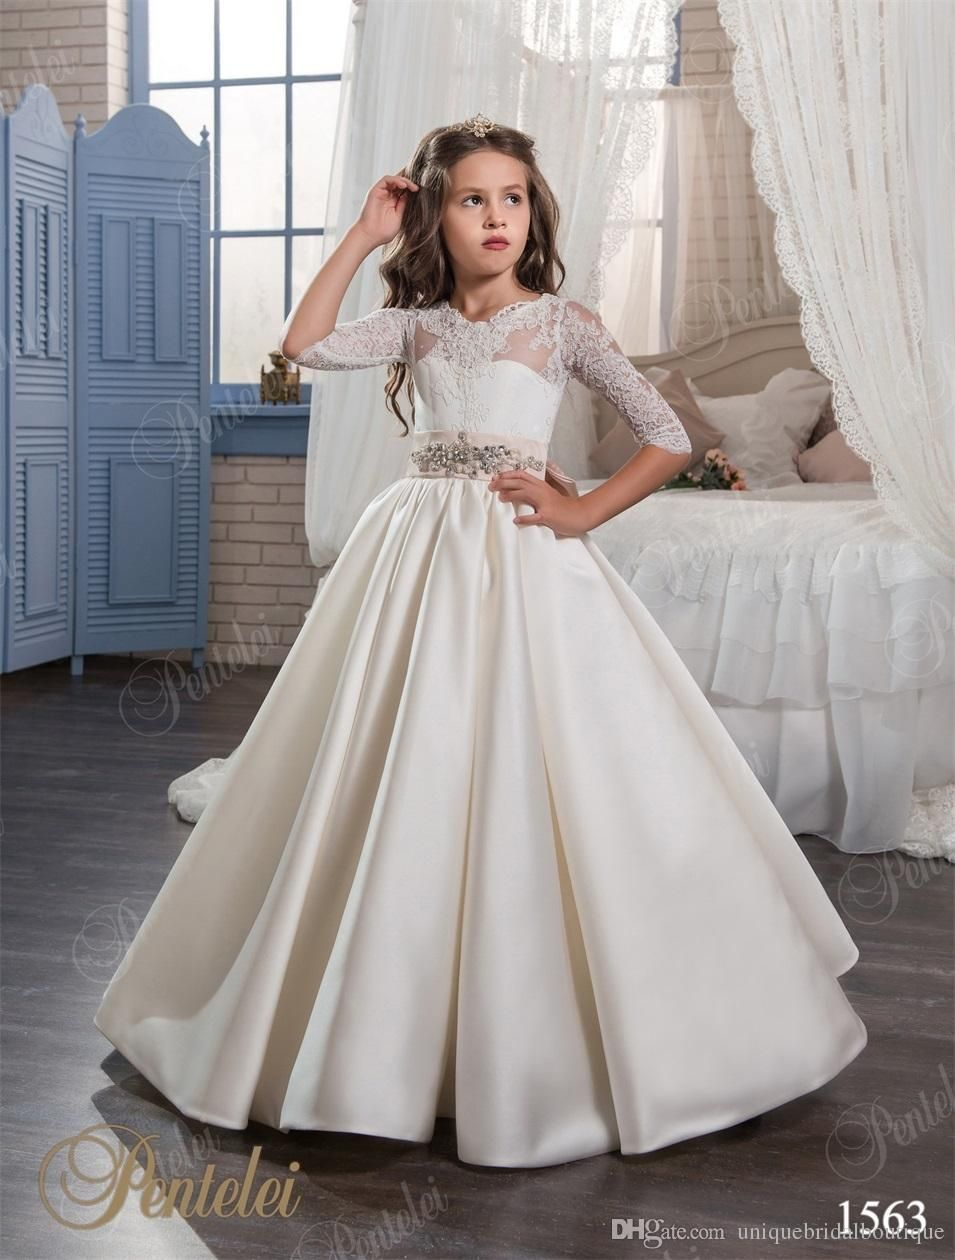 2017 vintage girls bridesmaid dresses with 34 long sleeves and 2017 vintage girls bridesmaid dresses with 34 long sleeves and lace up back soft ombrellifo Gallery